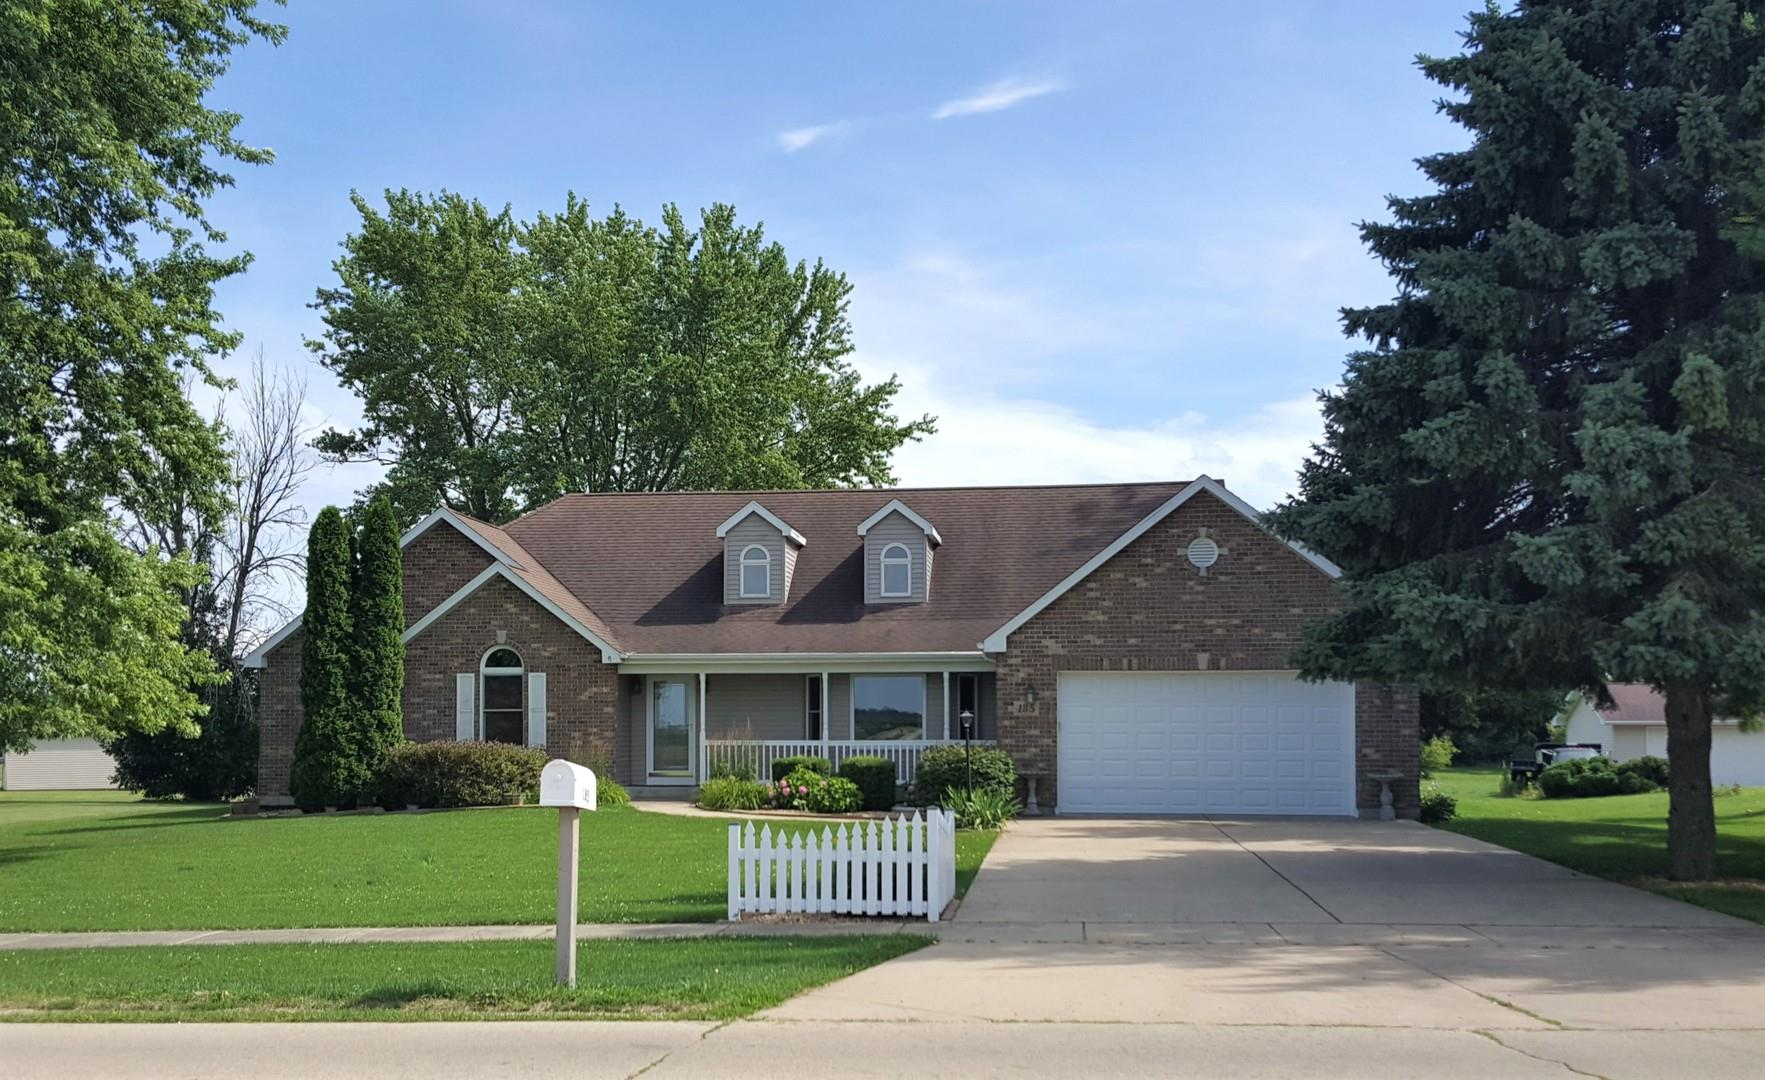 185 Chicago Road, Paw Paw, IL 61353 - #: 10789515